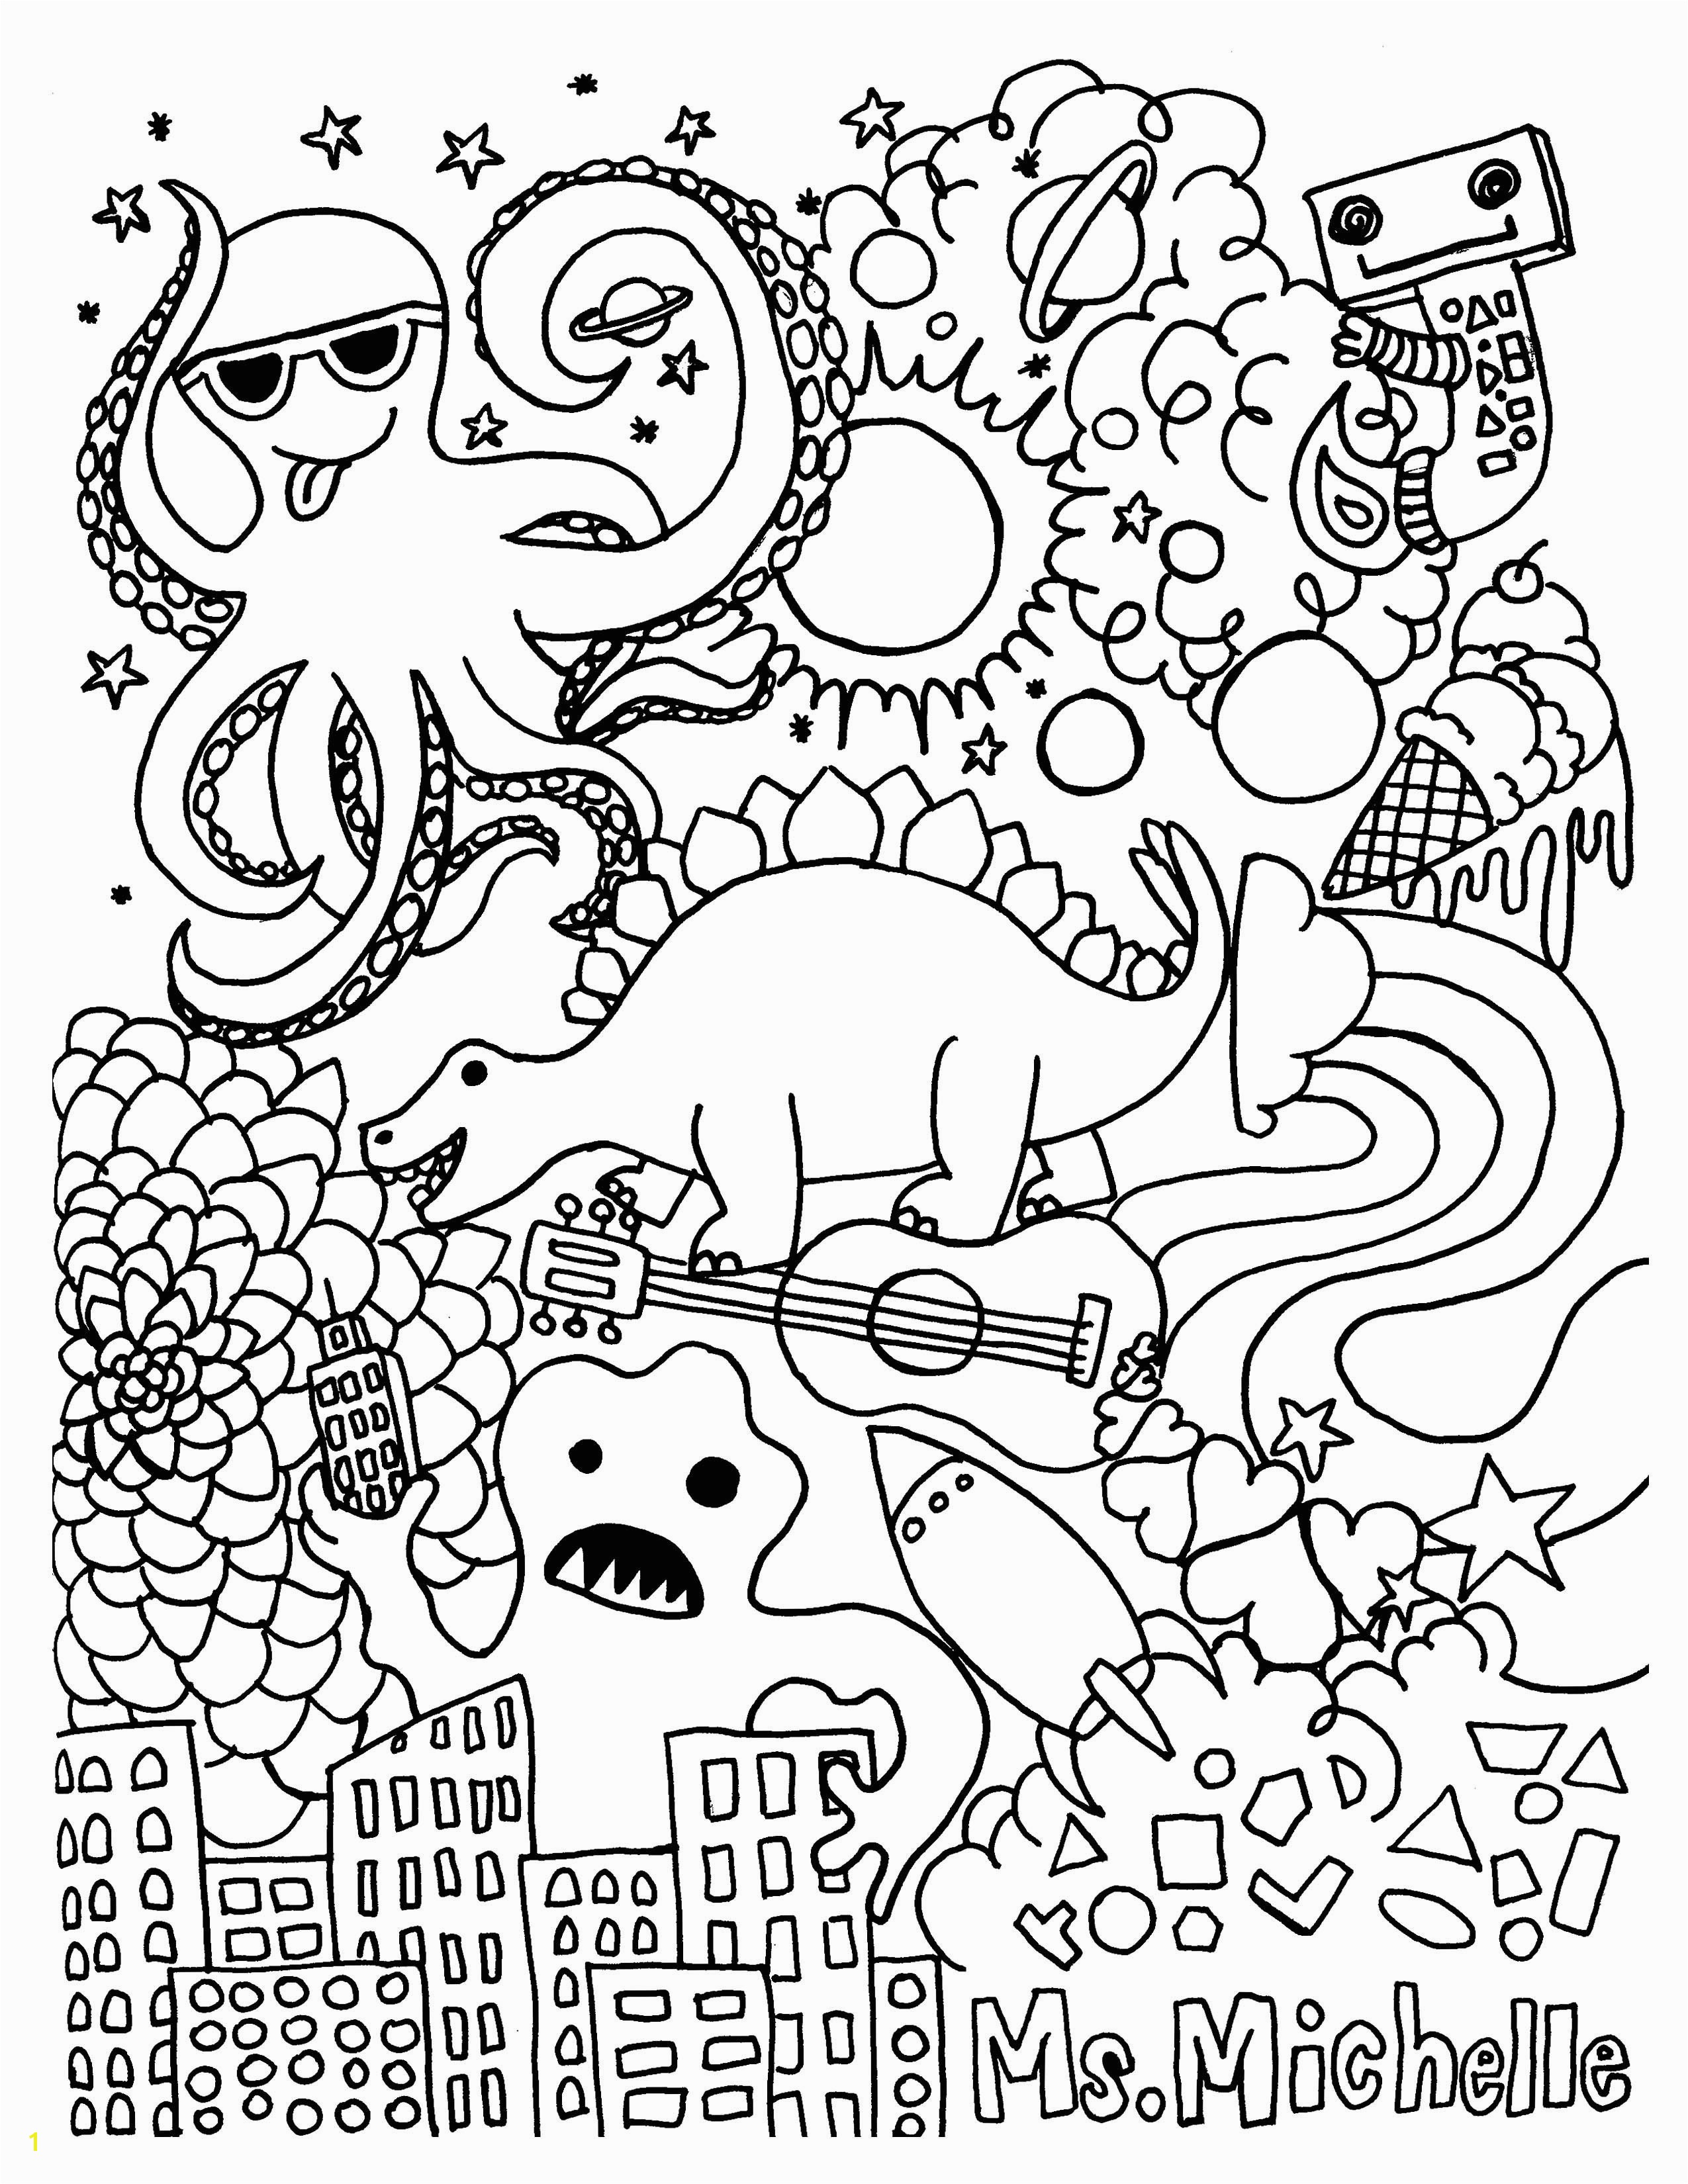 Printing Coloring Pages Lovely Cool Coloring Page Unique Witch Coloring Pages New Crayola Pages 0d